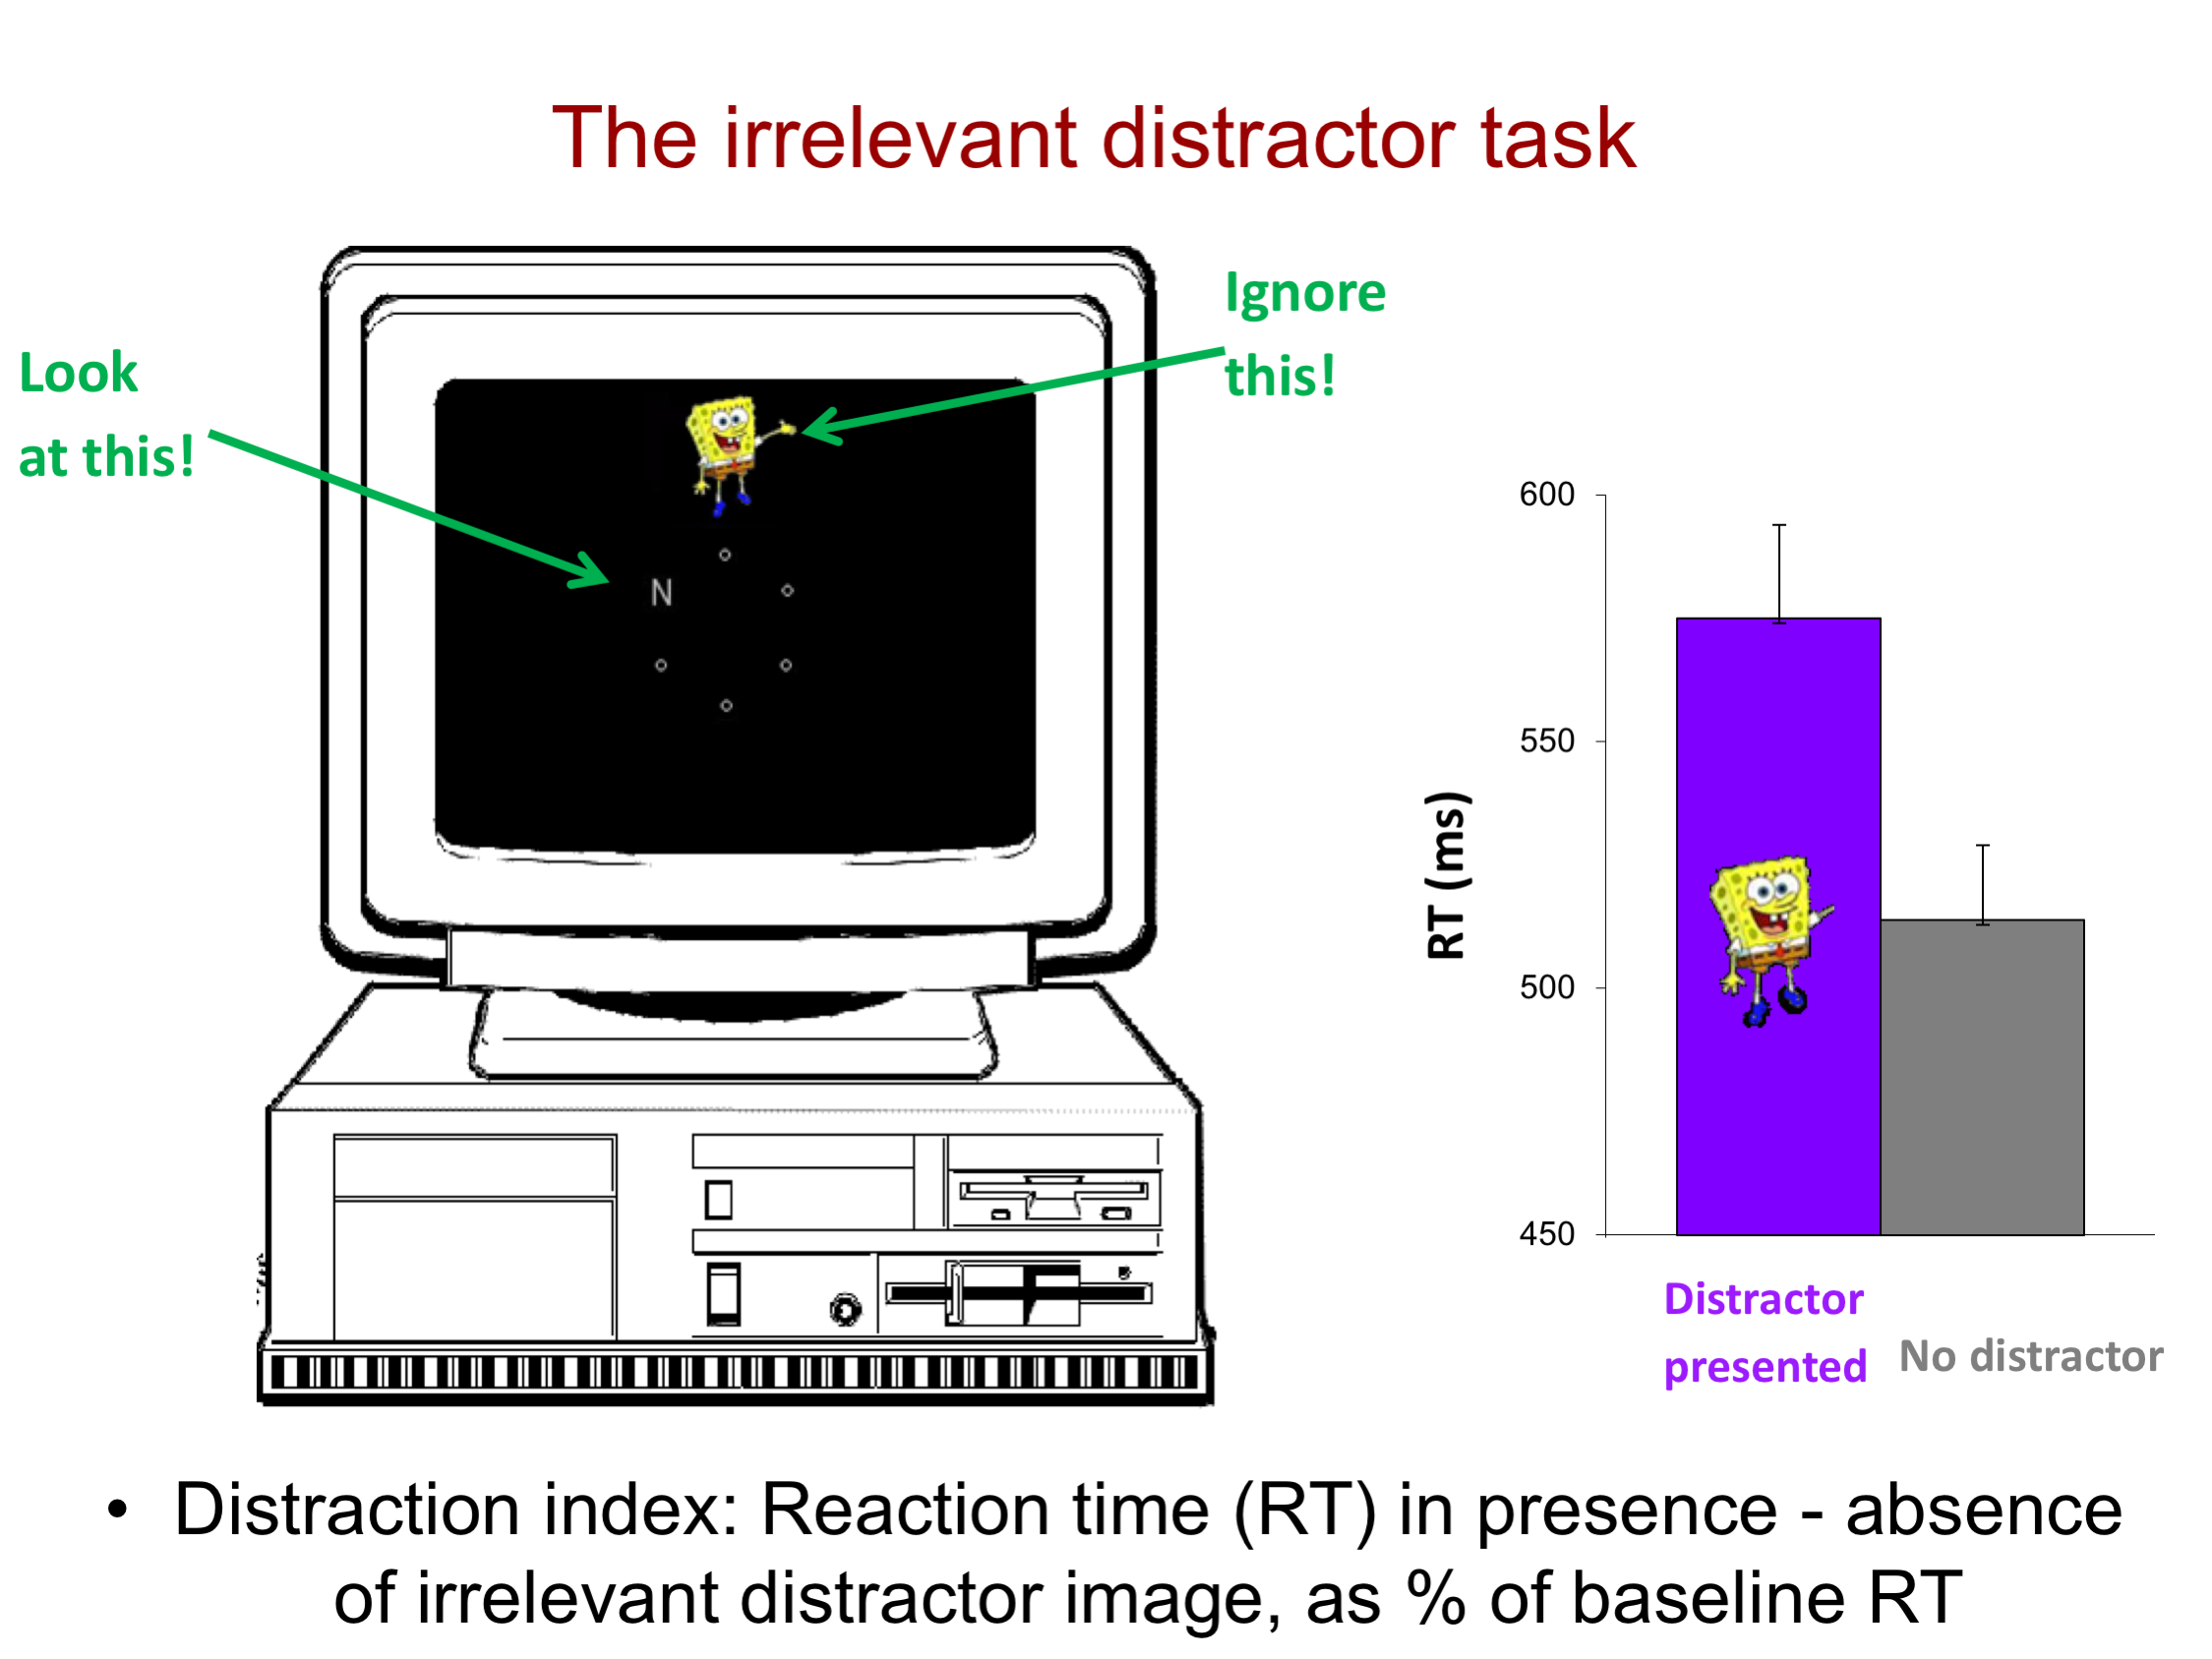 Image from a presentation by Dr. Sophie Forster